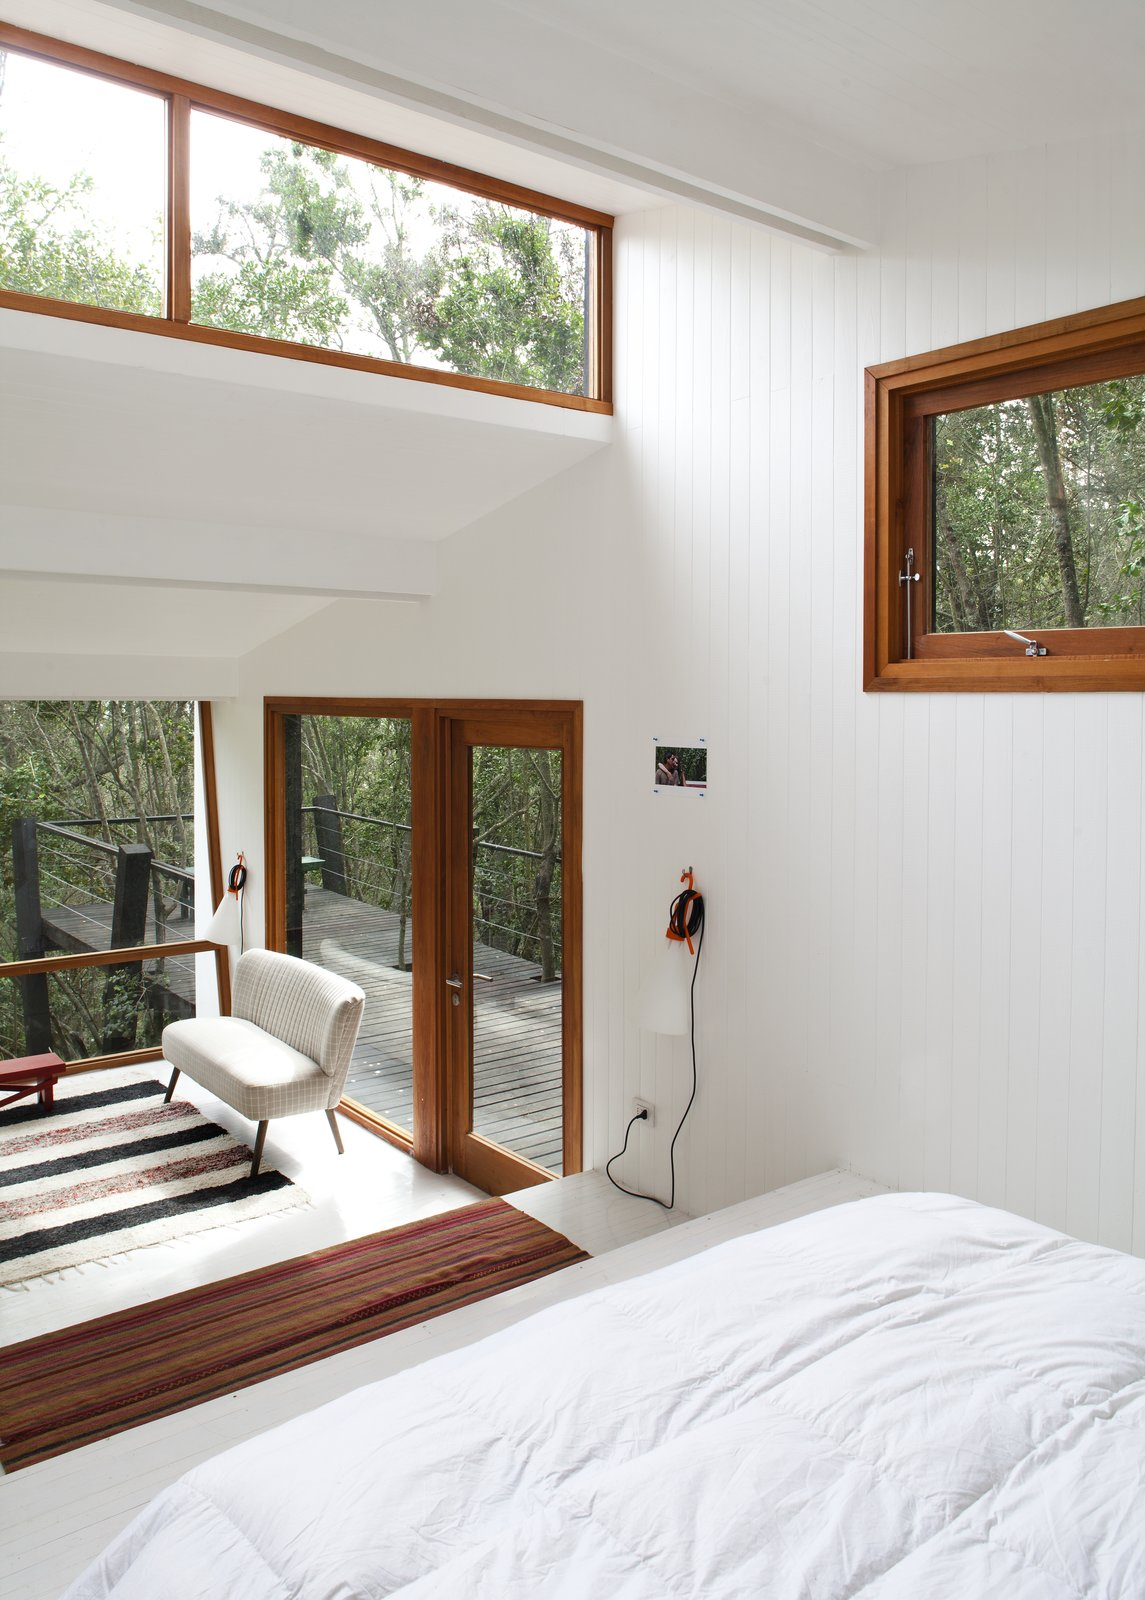 Bedroom, Bed, Painted Wood Floor, Wall Lighting, and Rug Floor  Photo 5 of 10 in A Little Chilean Tree House That's One With the Canopy